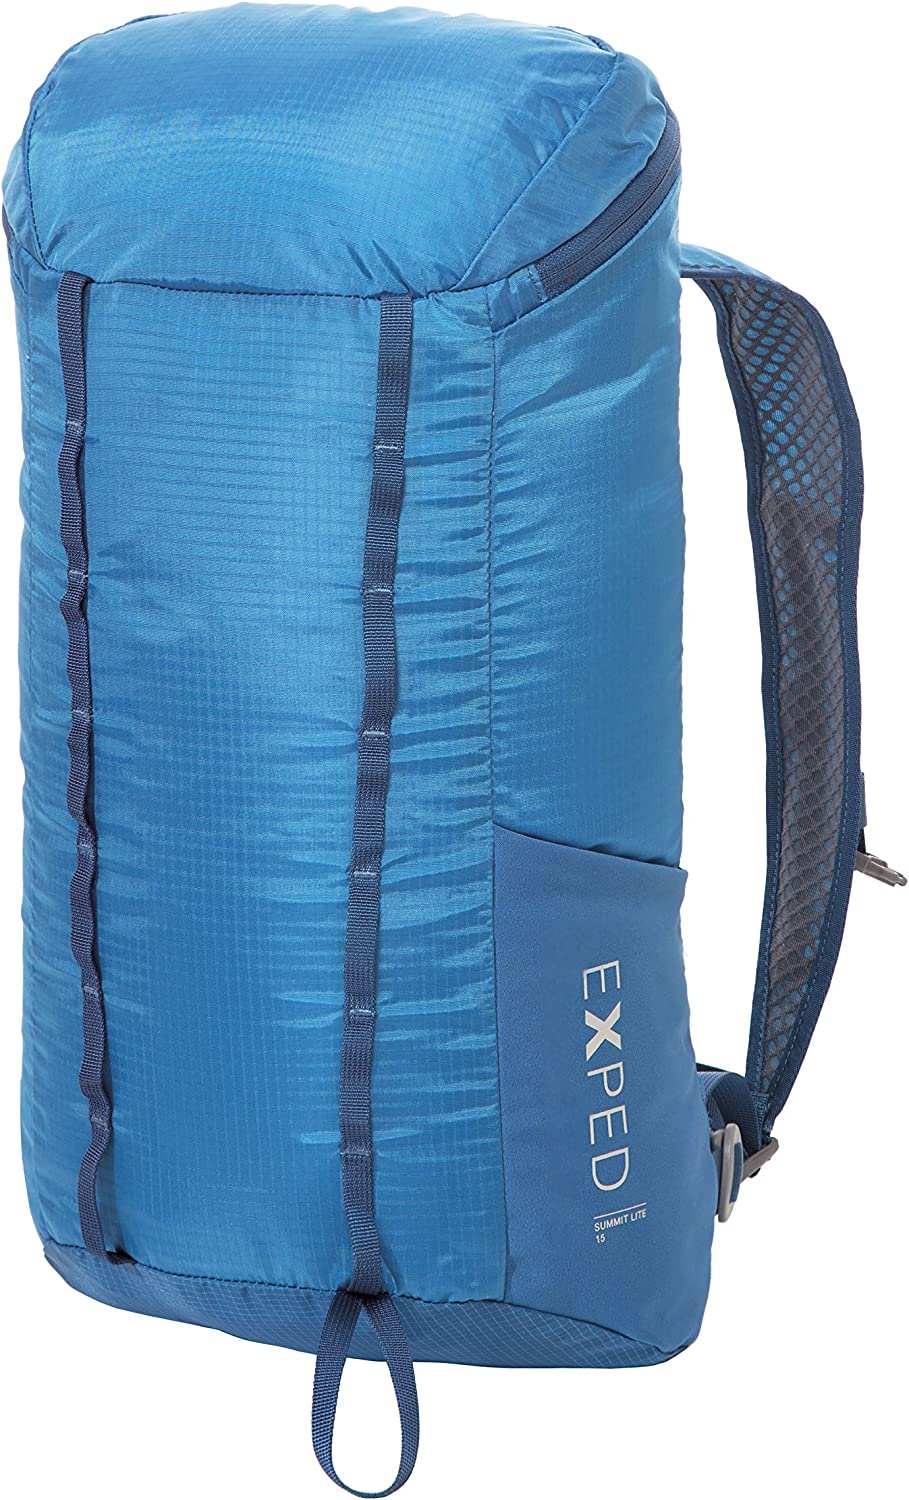 Exped Summit Lite 15 Packable Daypack